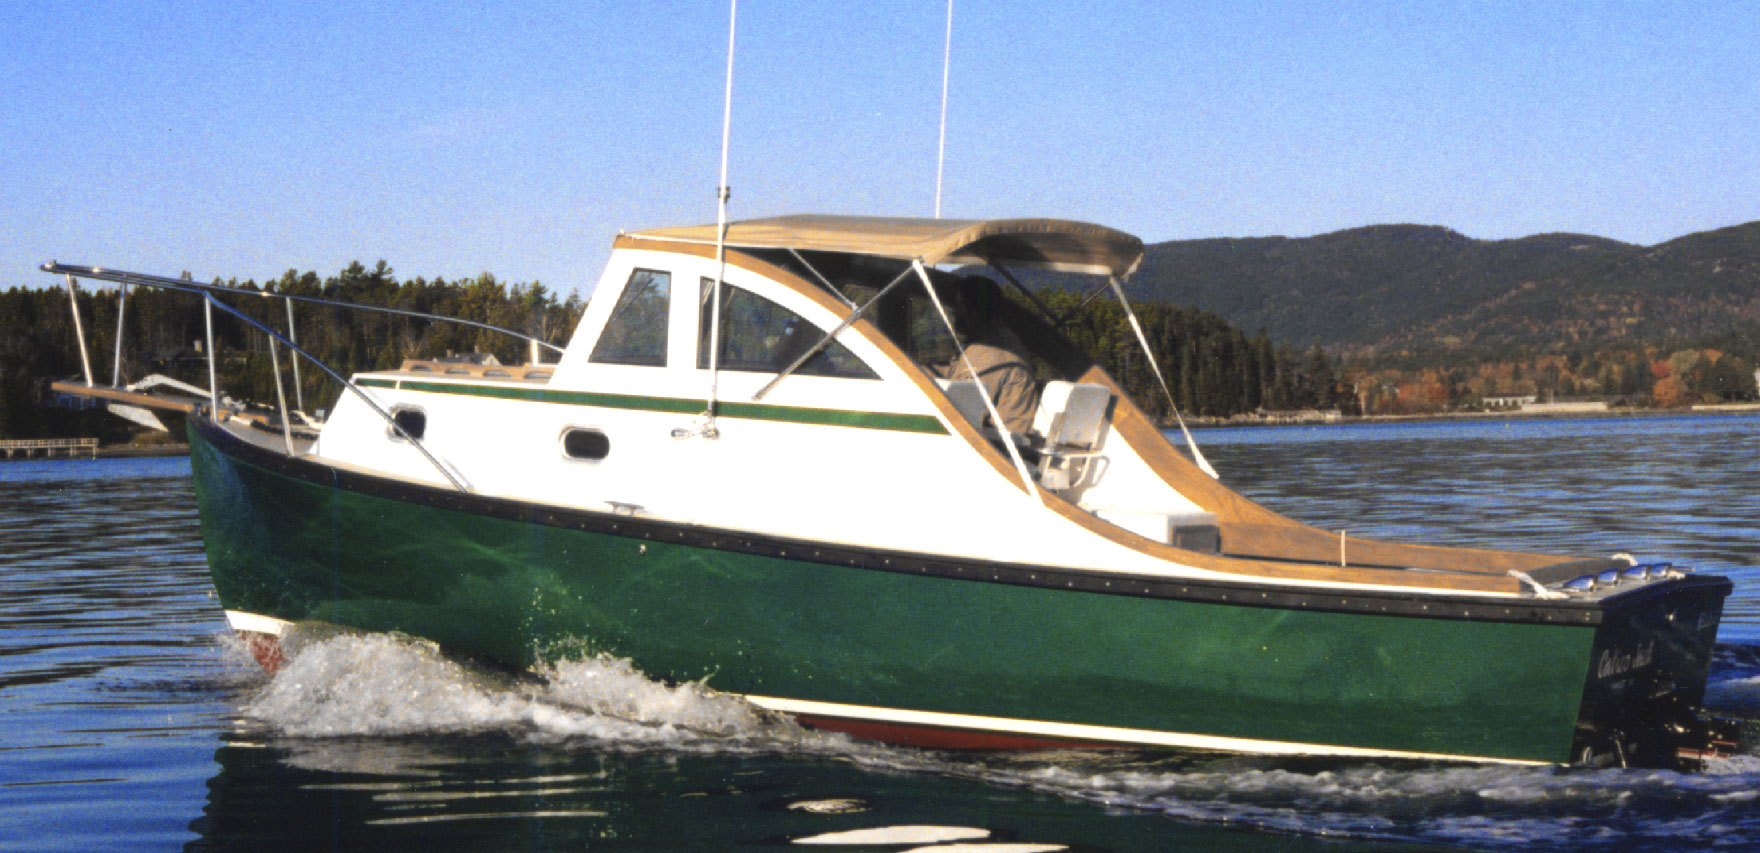 Ellis Boat For Sale: Ellis 24 Express Cruiser